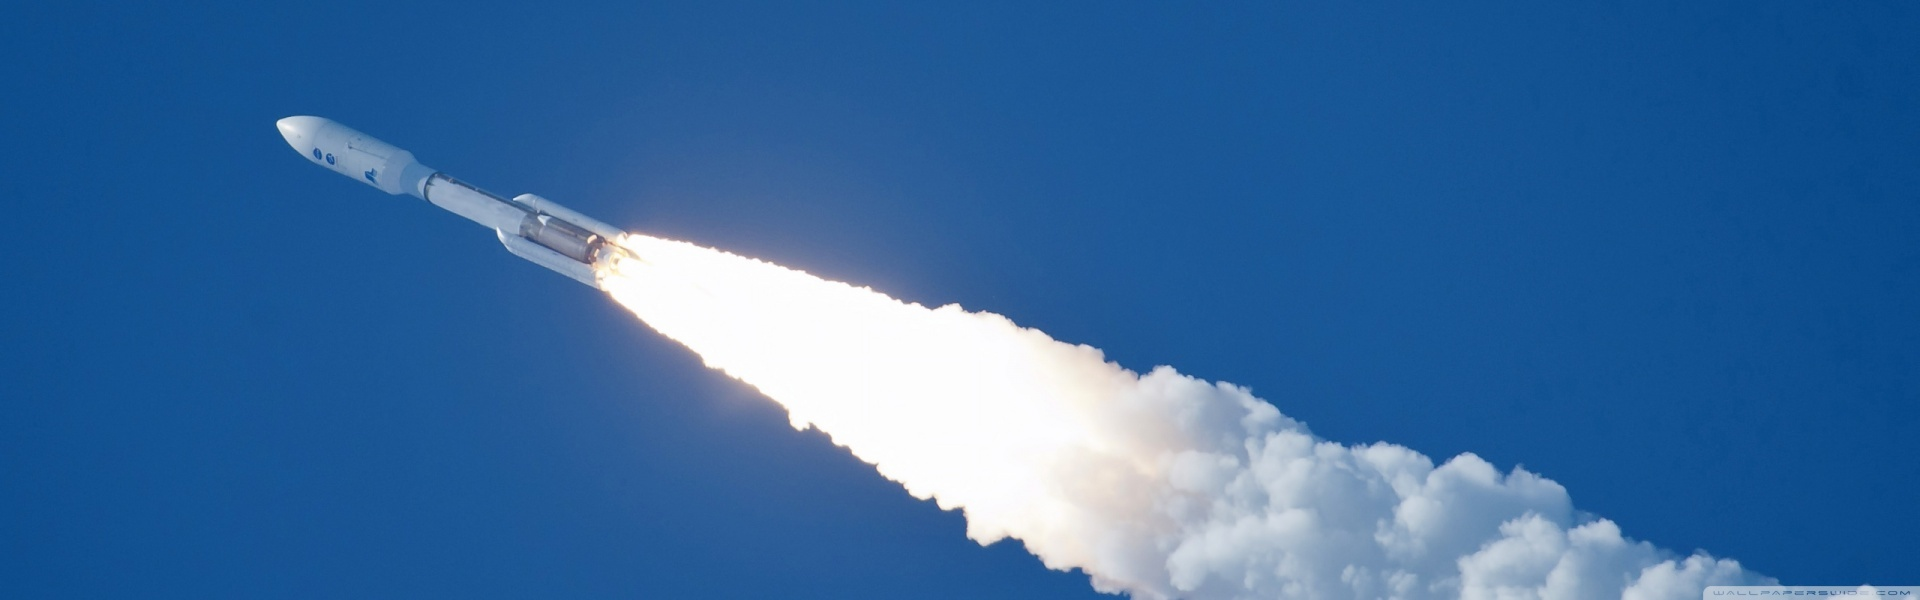 Building applications should not be rocket science